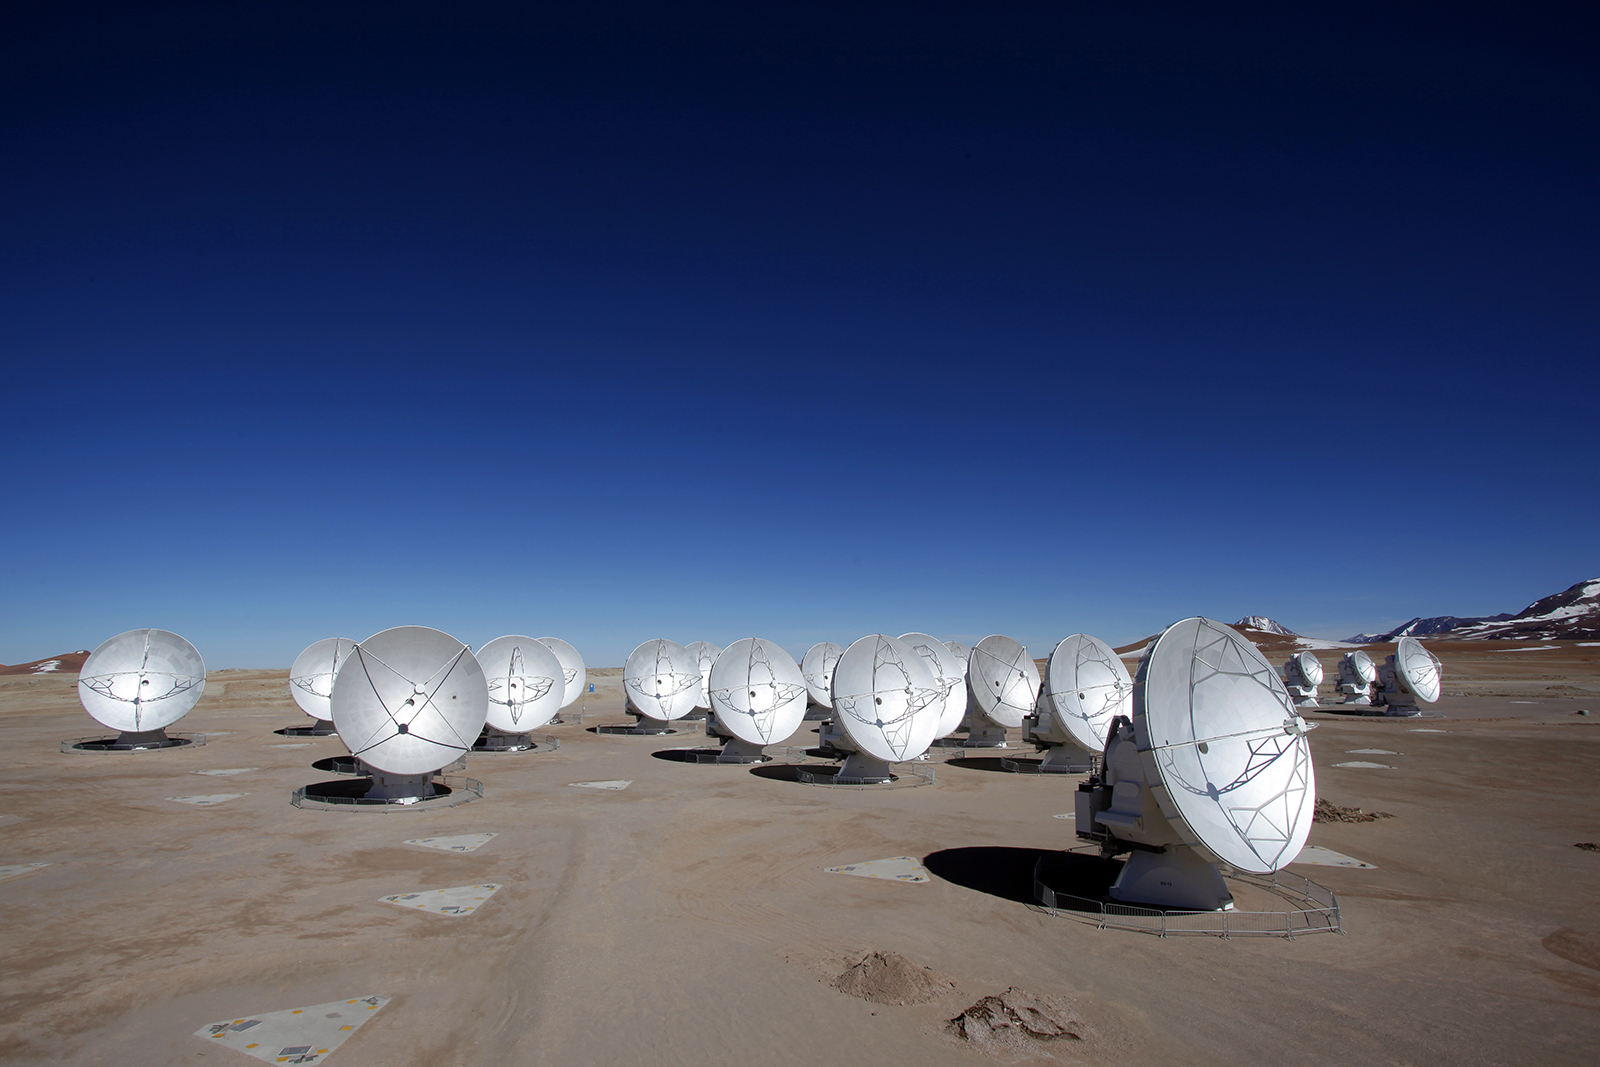 More than a dozen antennas pointing forward sit on barren land surrounded by red and blue-purple mountains in the distance.